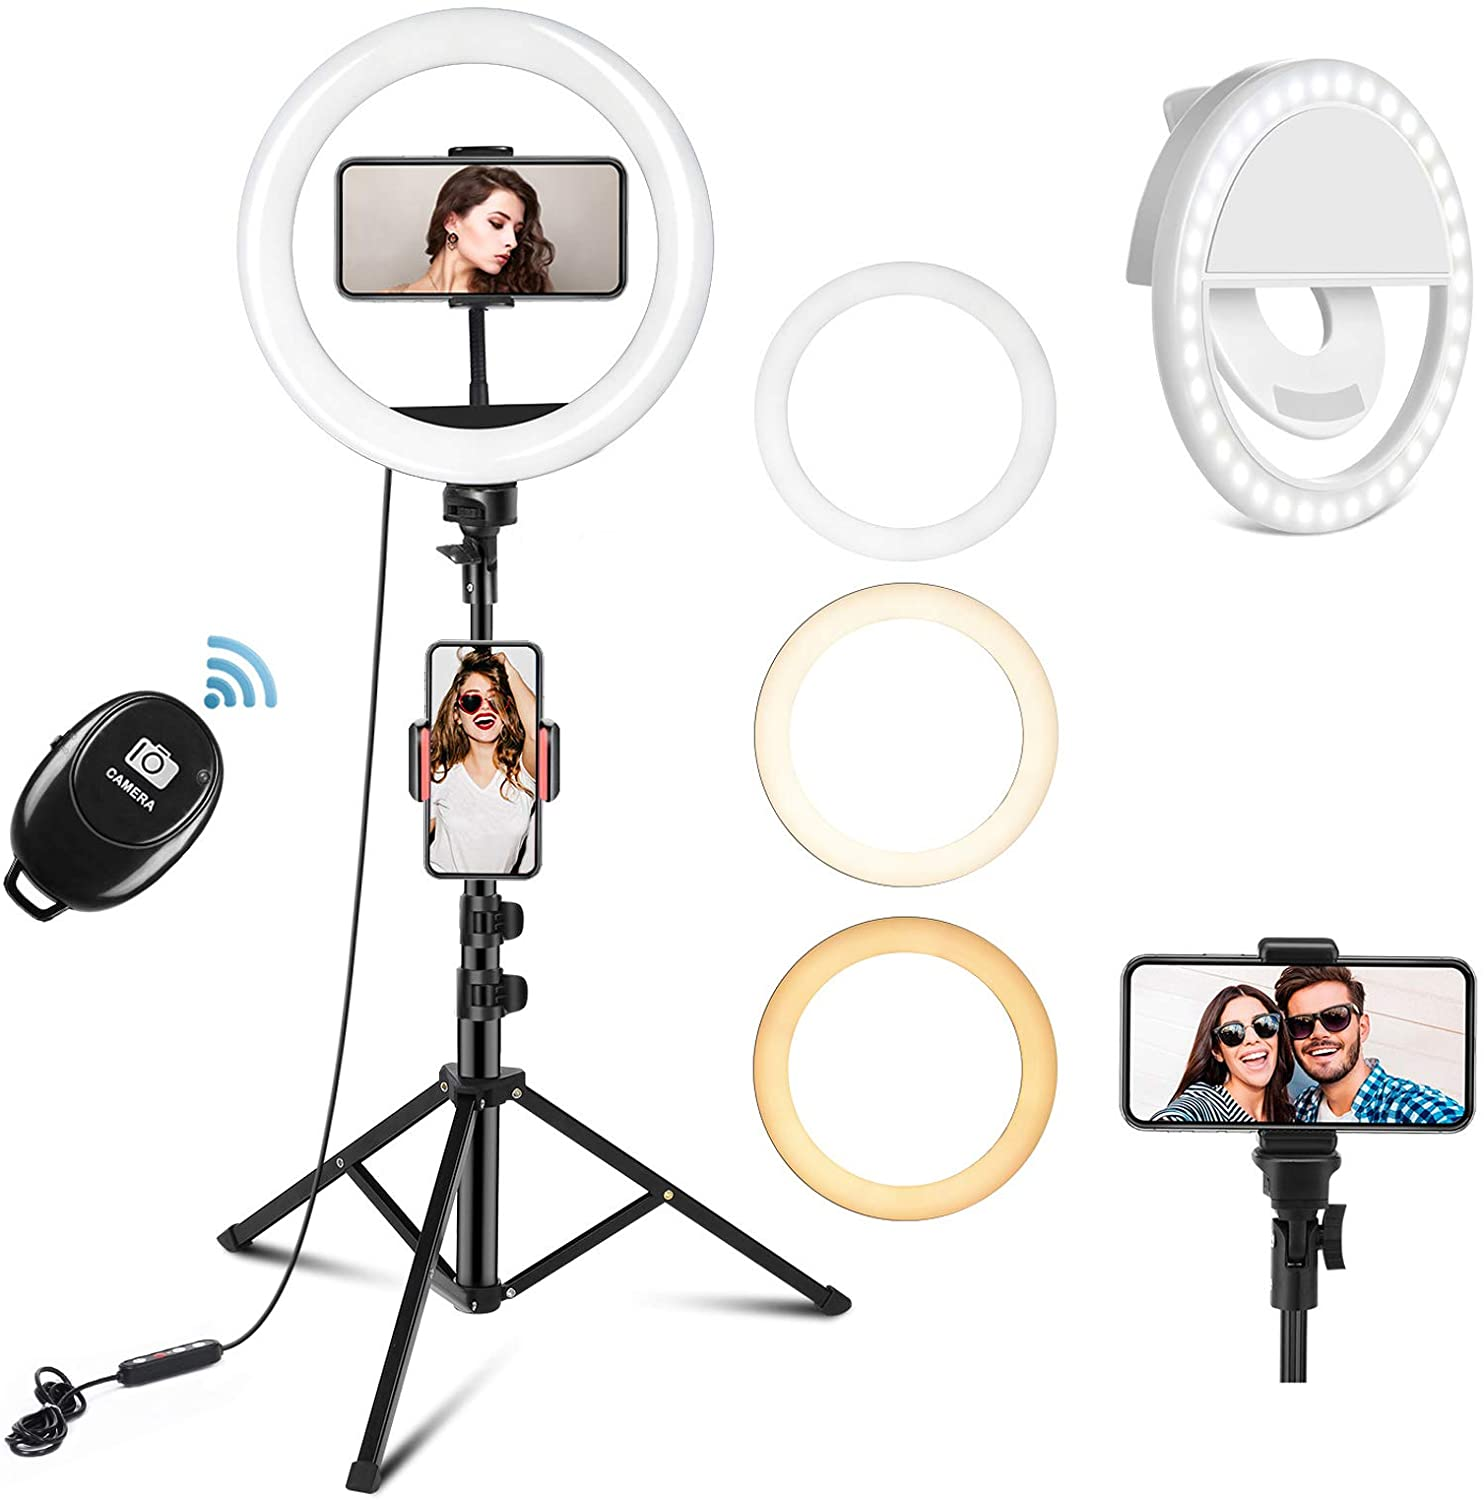 PEHESHE Selfie Ring Light and Tripod Stand with Phone Holder for Live Stream